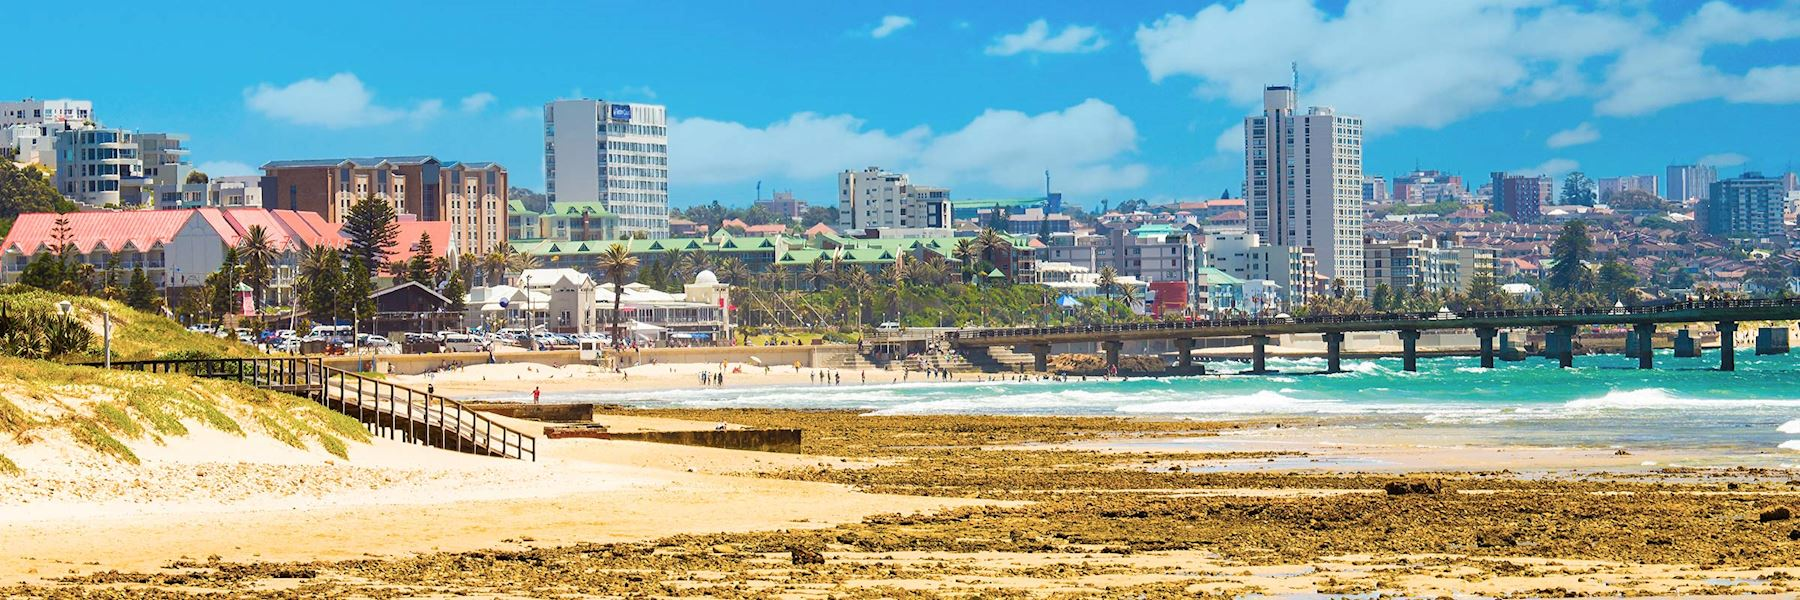 Visit port elizabeth on a trip to south africa audley travel - What to do in port elizabeth south africa ...